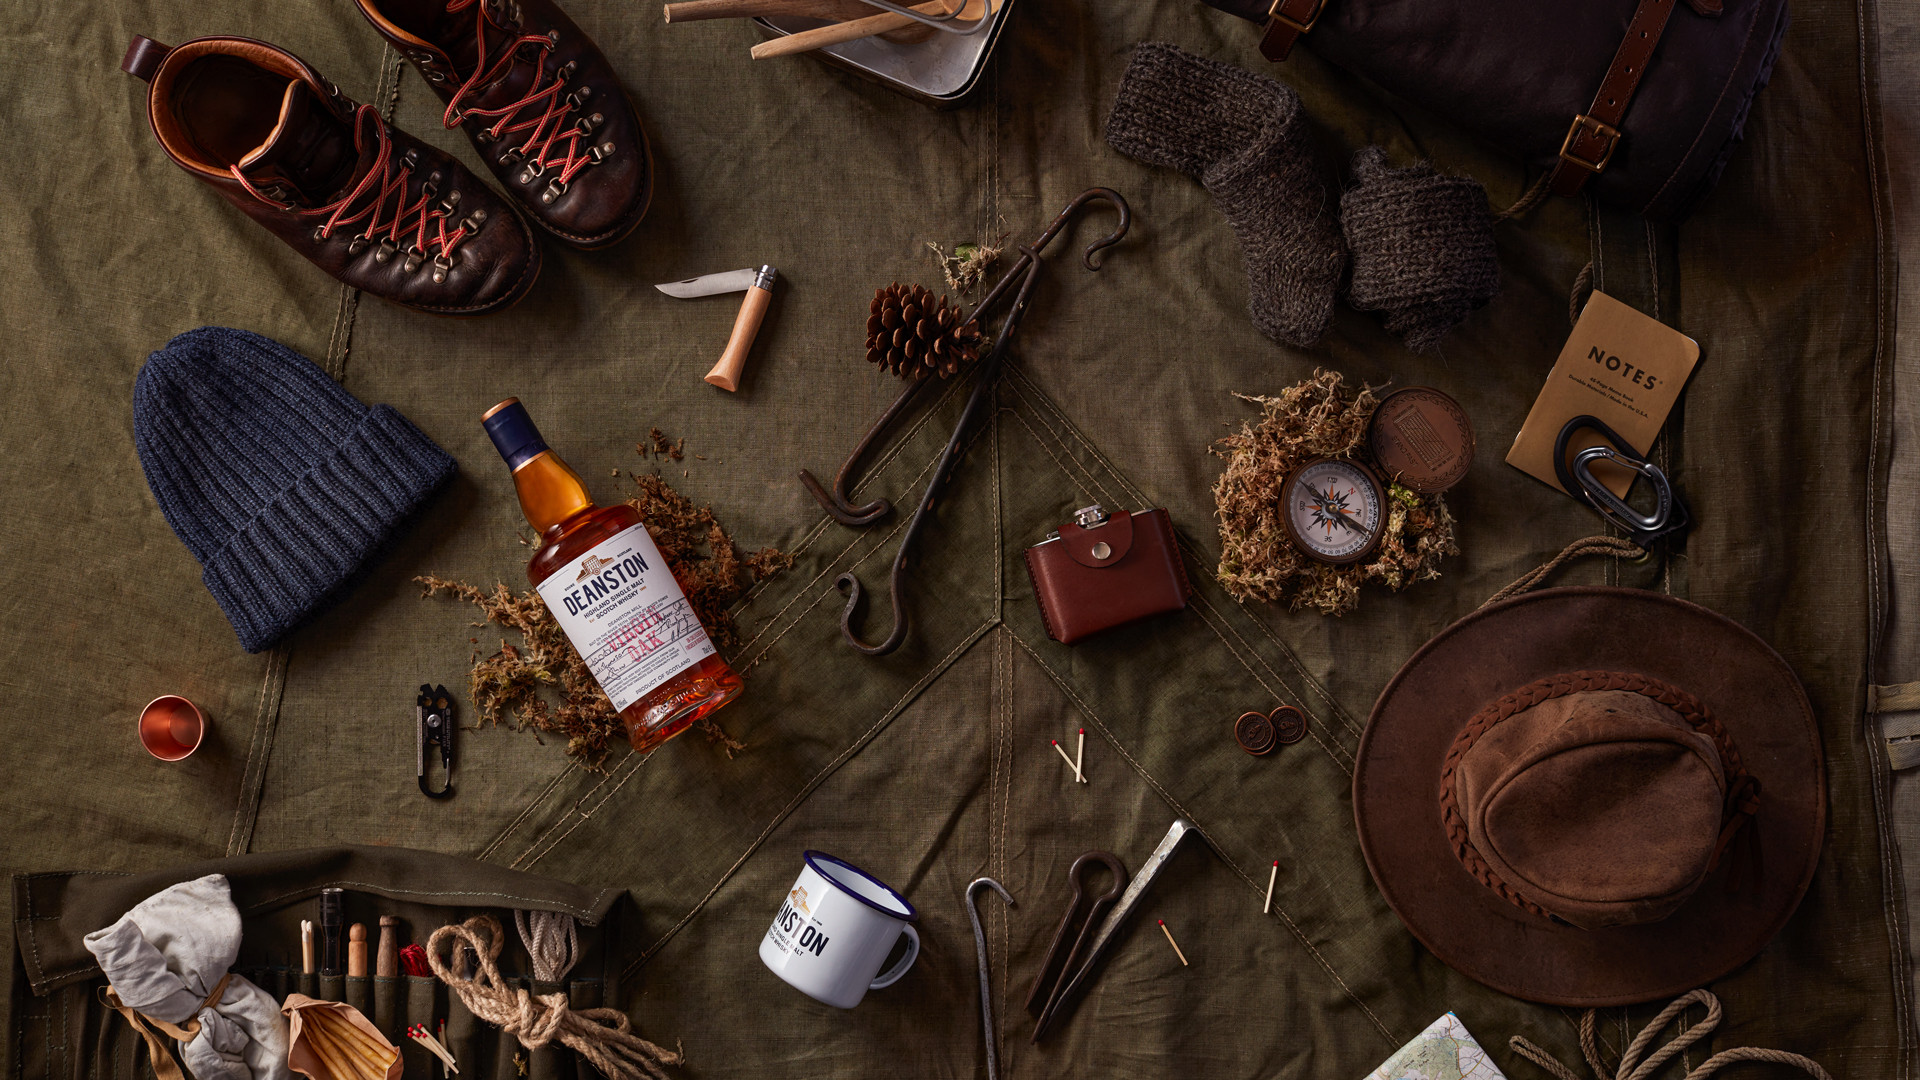 Deanston smoked old fashioned recipe | a spread of earthy hipster items